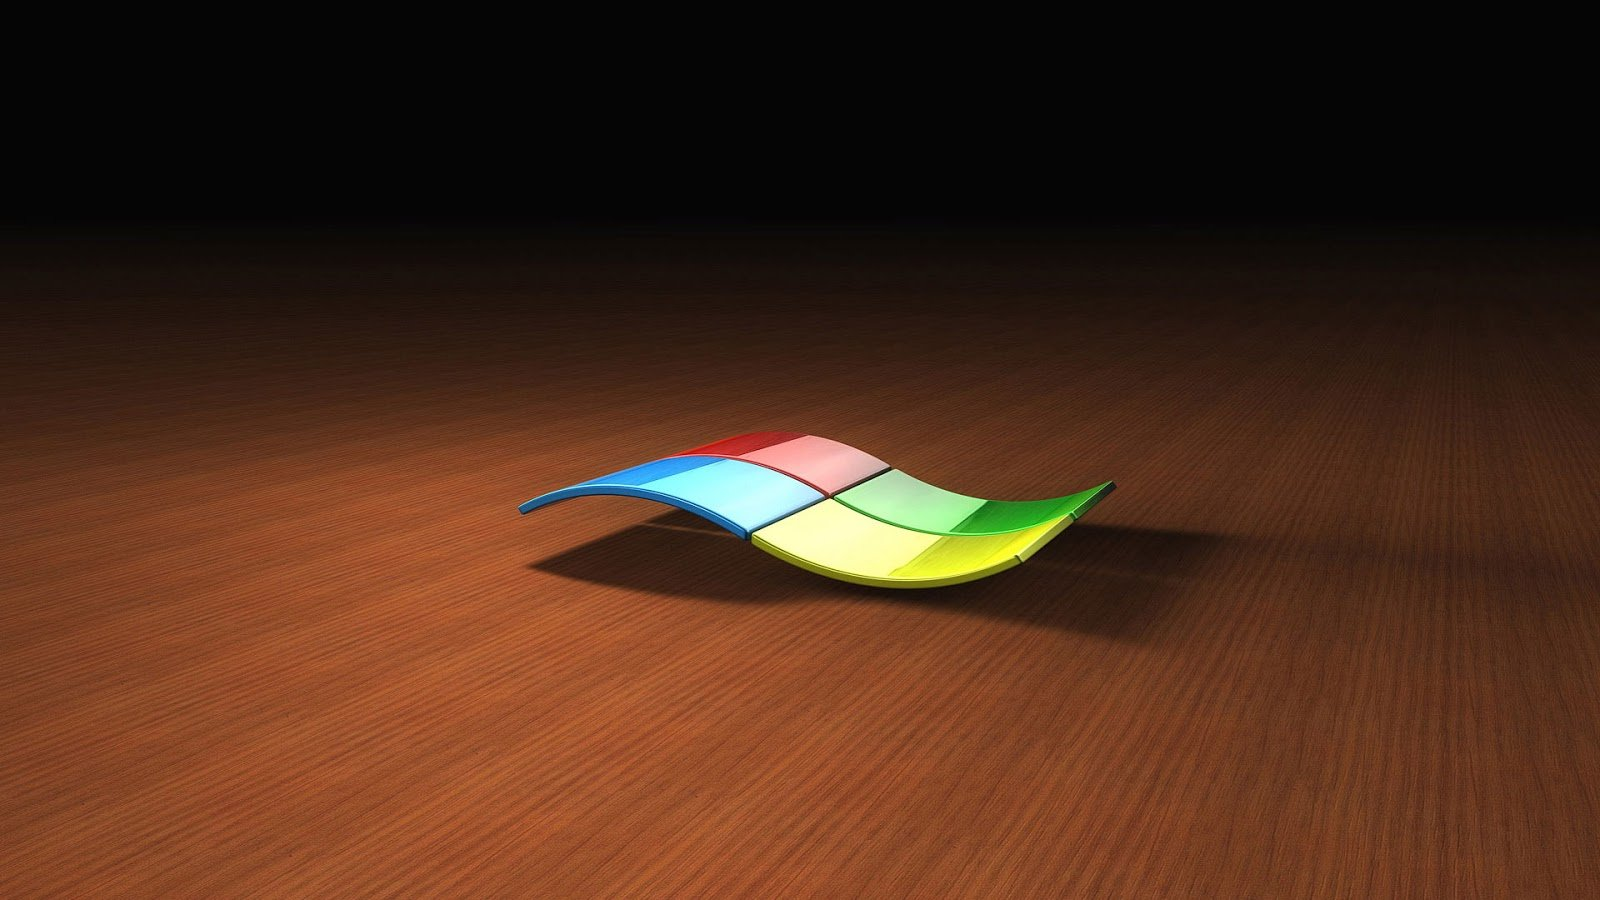 57 Free HD Windows 7 Wallpapers For Download